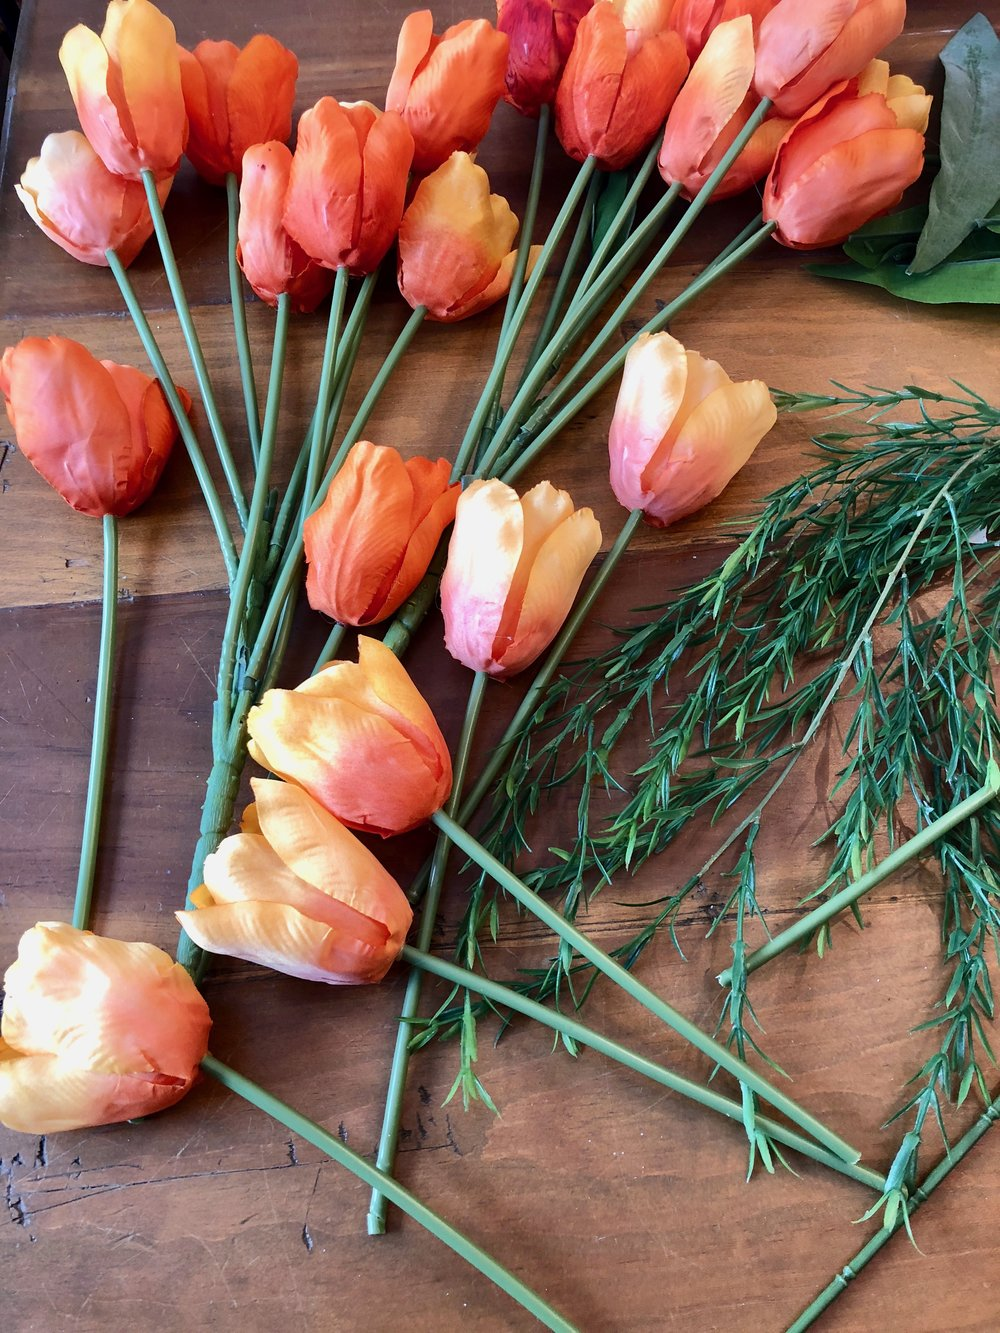 making a carrot out of orange tulips for Easter